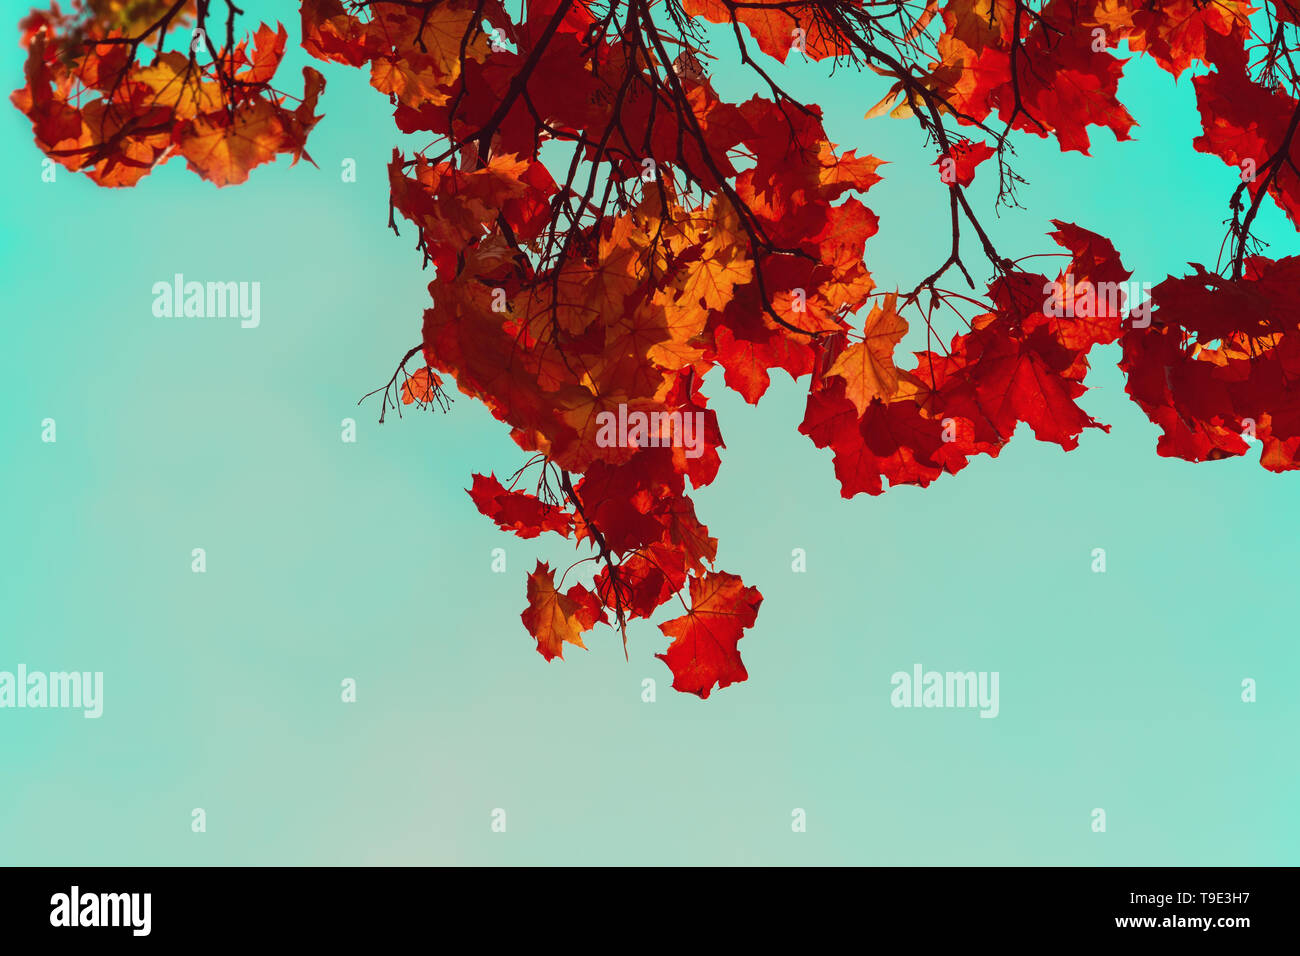 Autumn colorful maple leaves. Sky through the autumn tree branches from below. Foliage background. Copy space - Stock Image